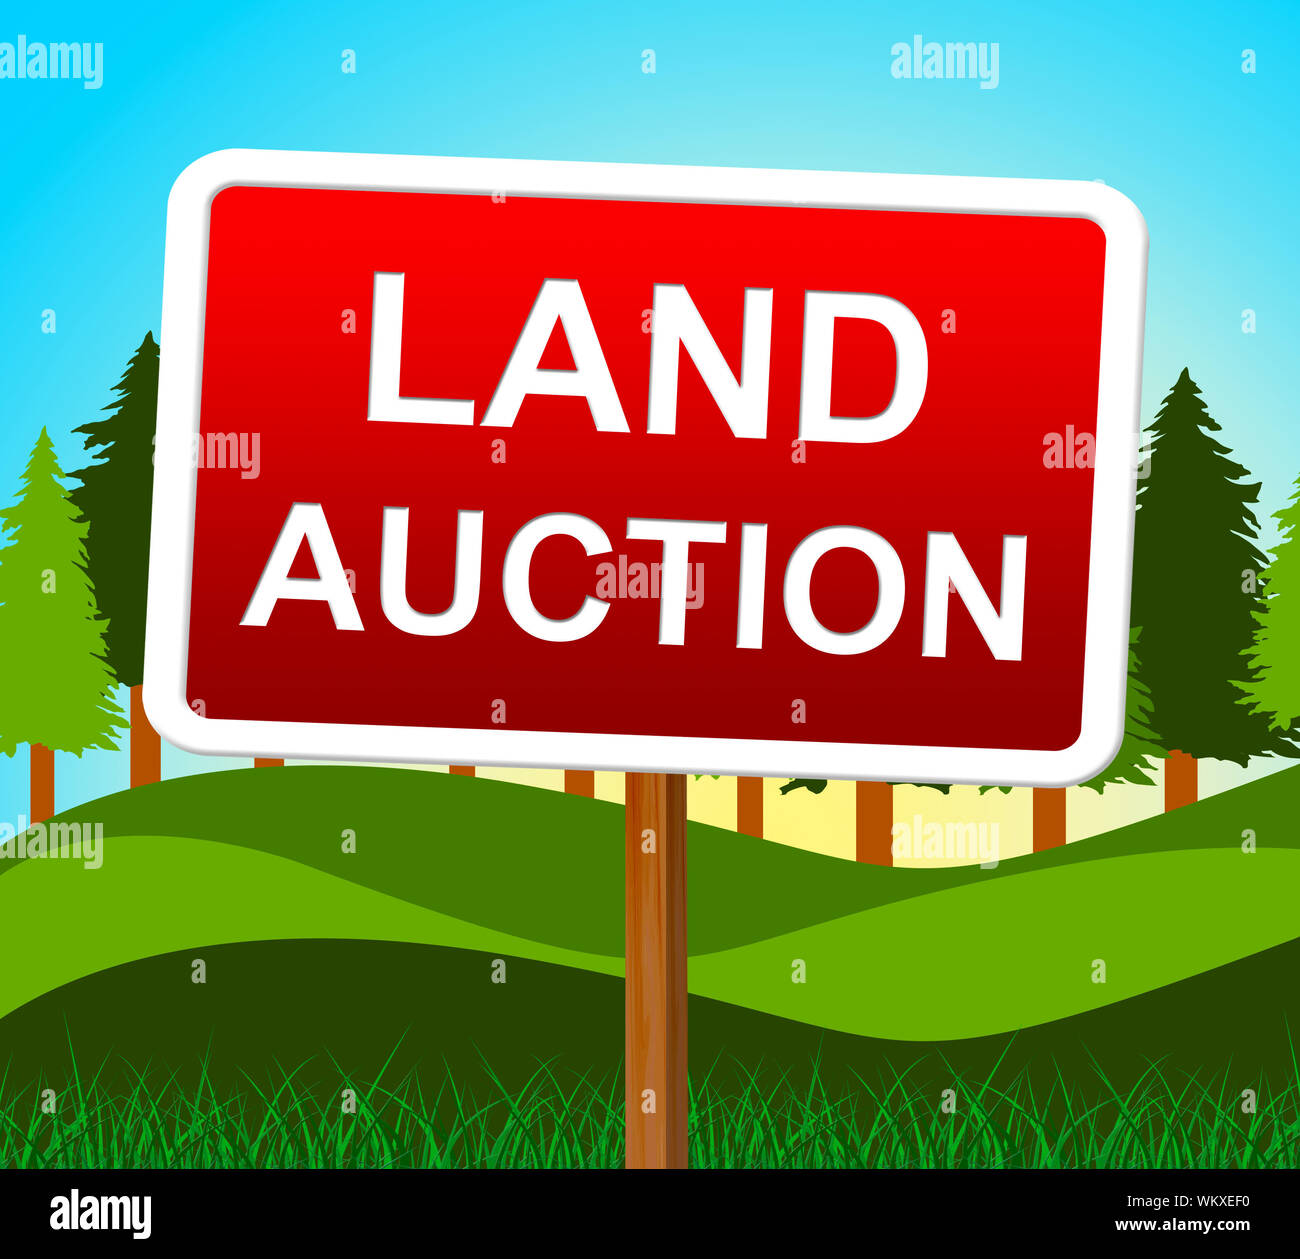 Land Auction Indicating Building Plot And Bidding Stock Photo